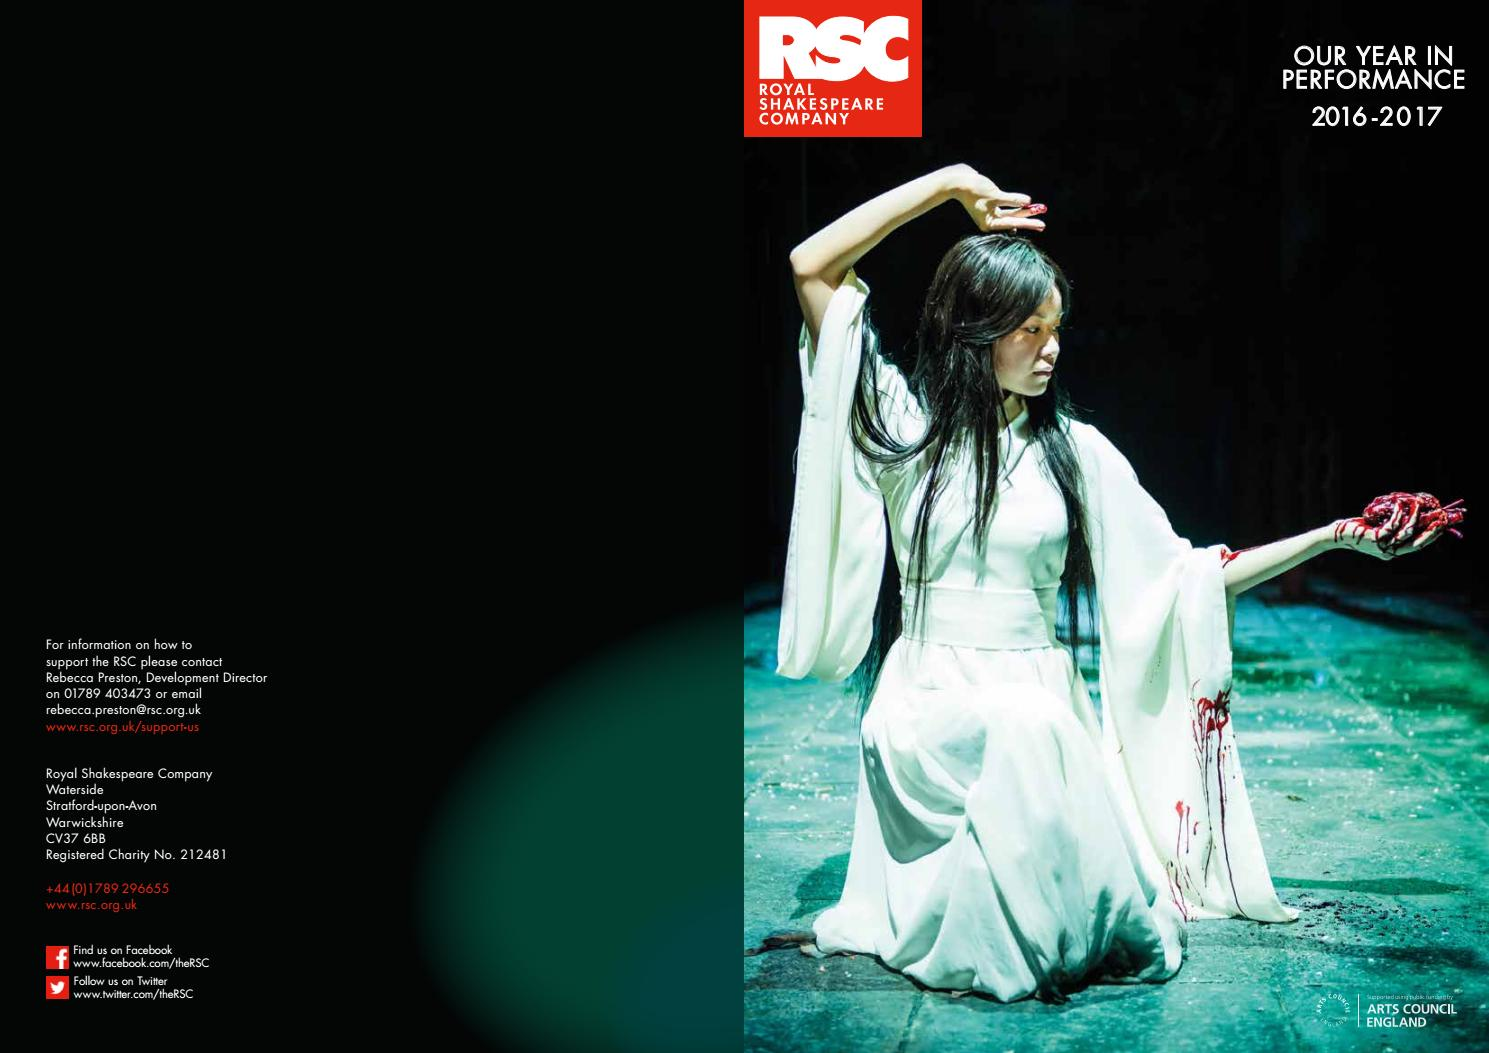 RSC Year in Performance 2016 17 by Royal Shakespeare Company